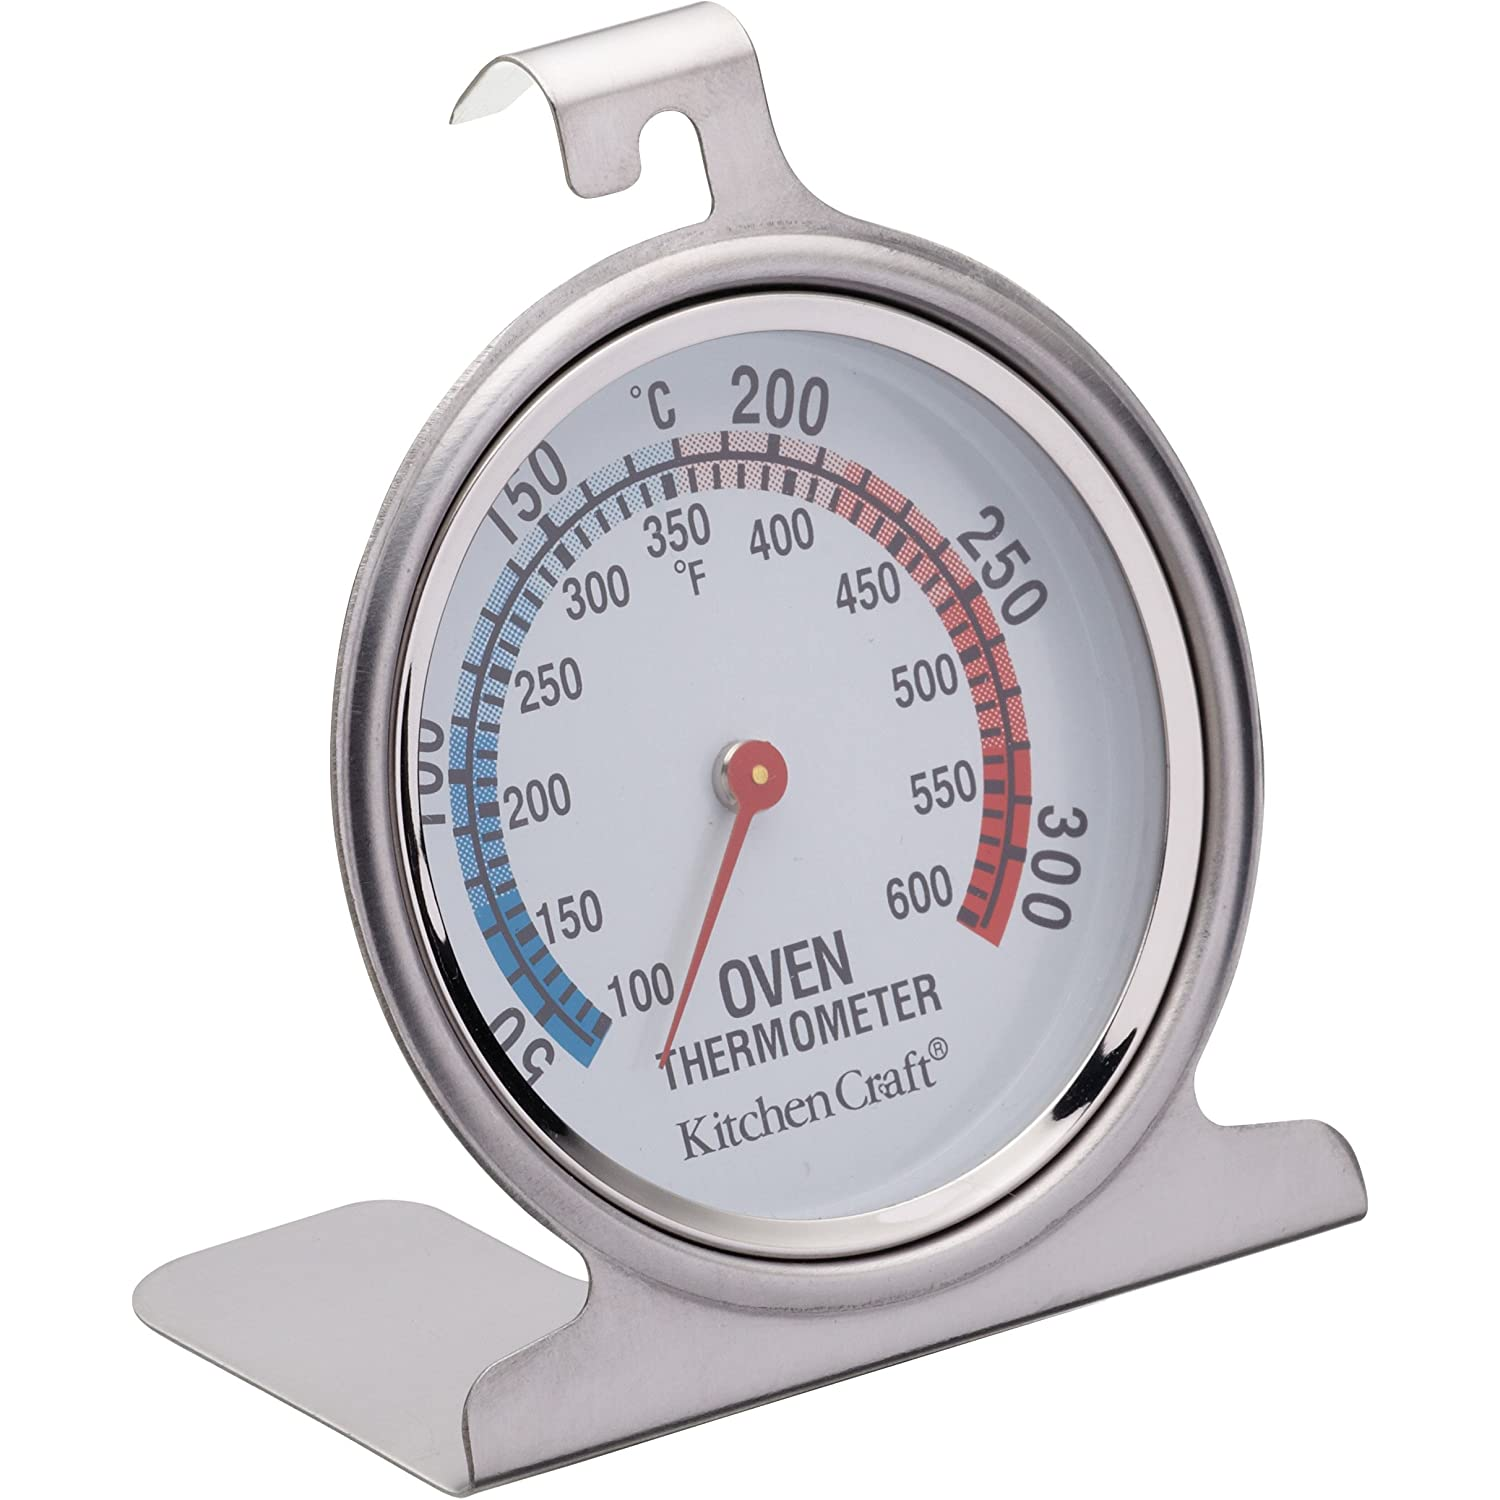 KitchenCraft Ofen- thermometer